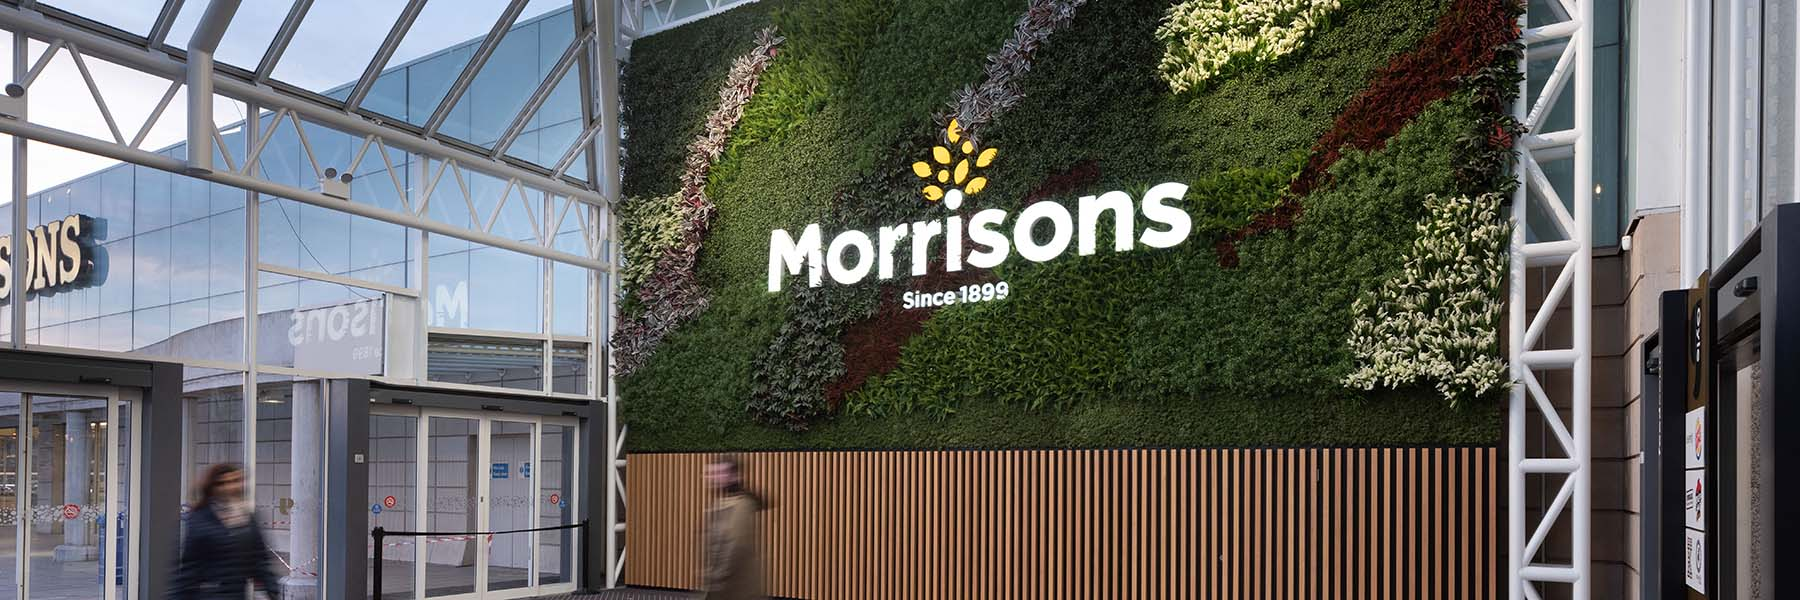 Huge 50 sq m green wall of artificial plants, Nordik Moss and Morrisons supermarket branding welcomes visitors at Gyle Shopping Centre Edinburgh